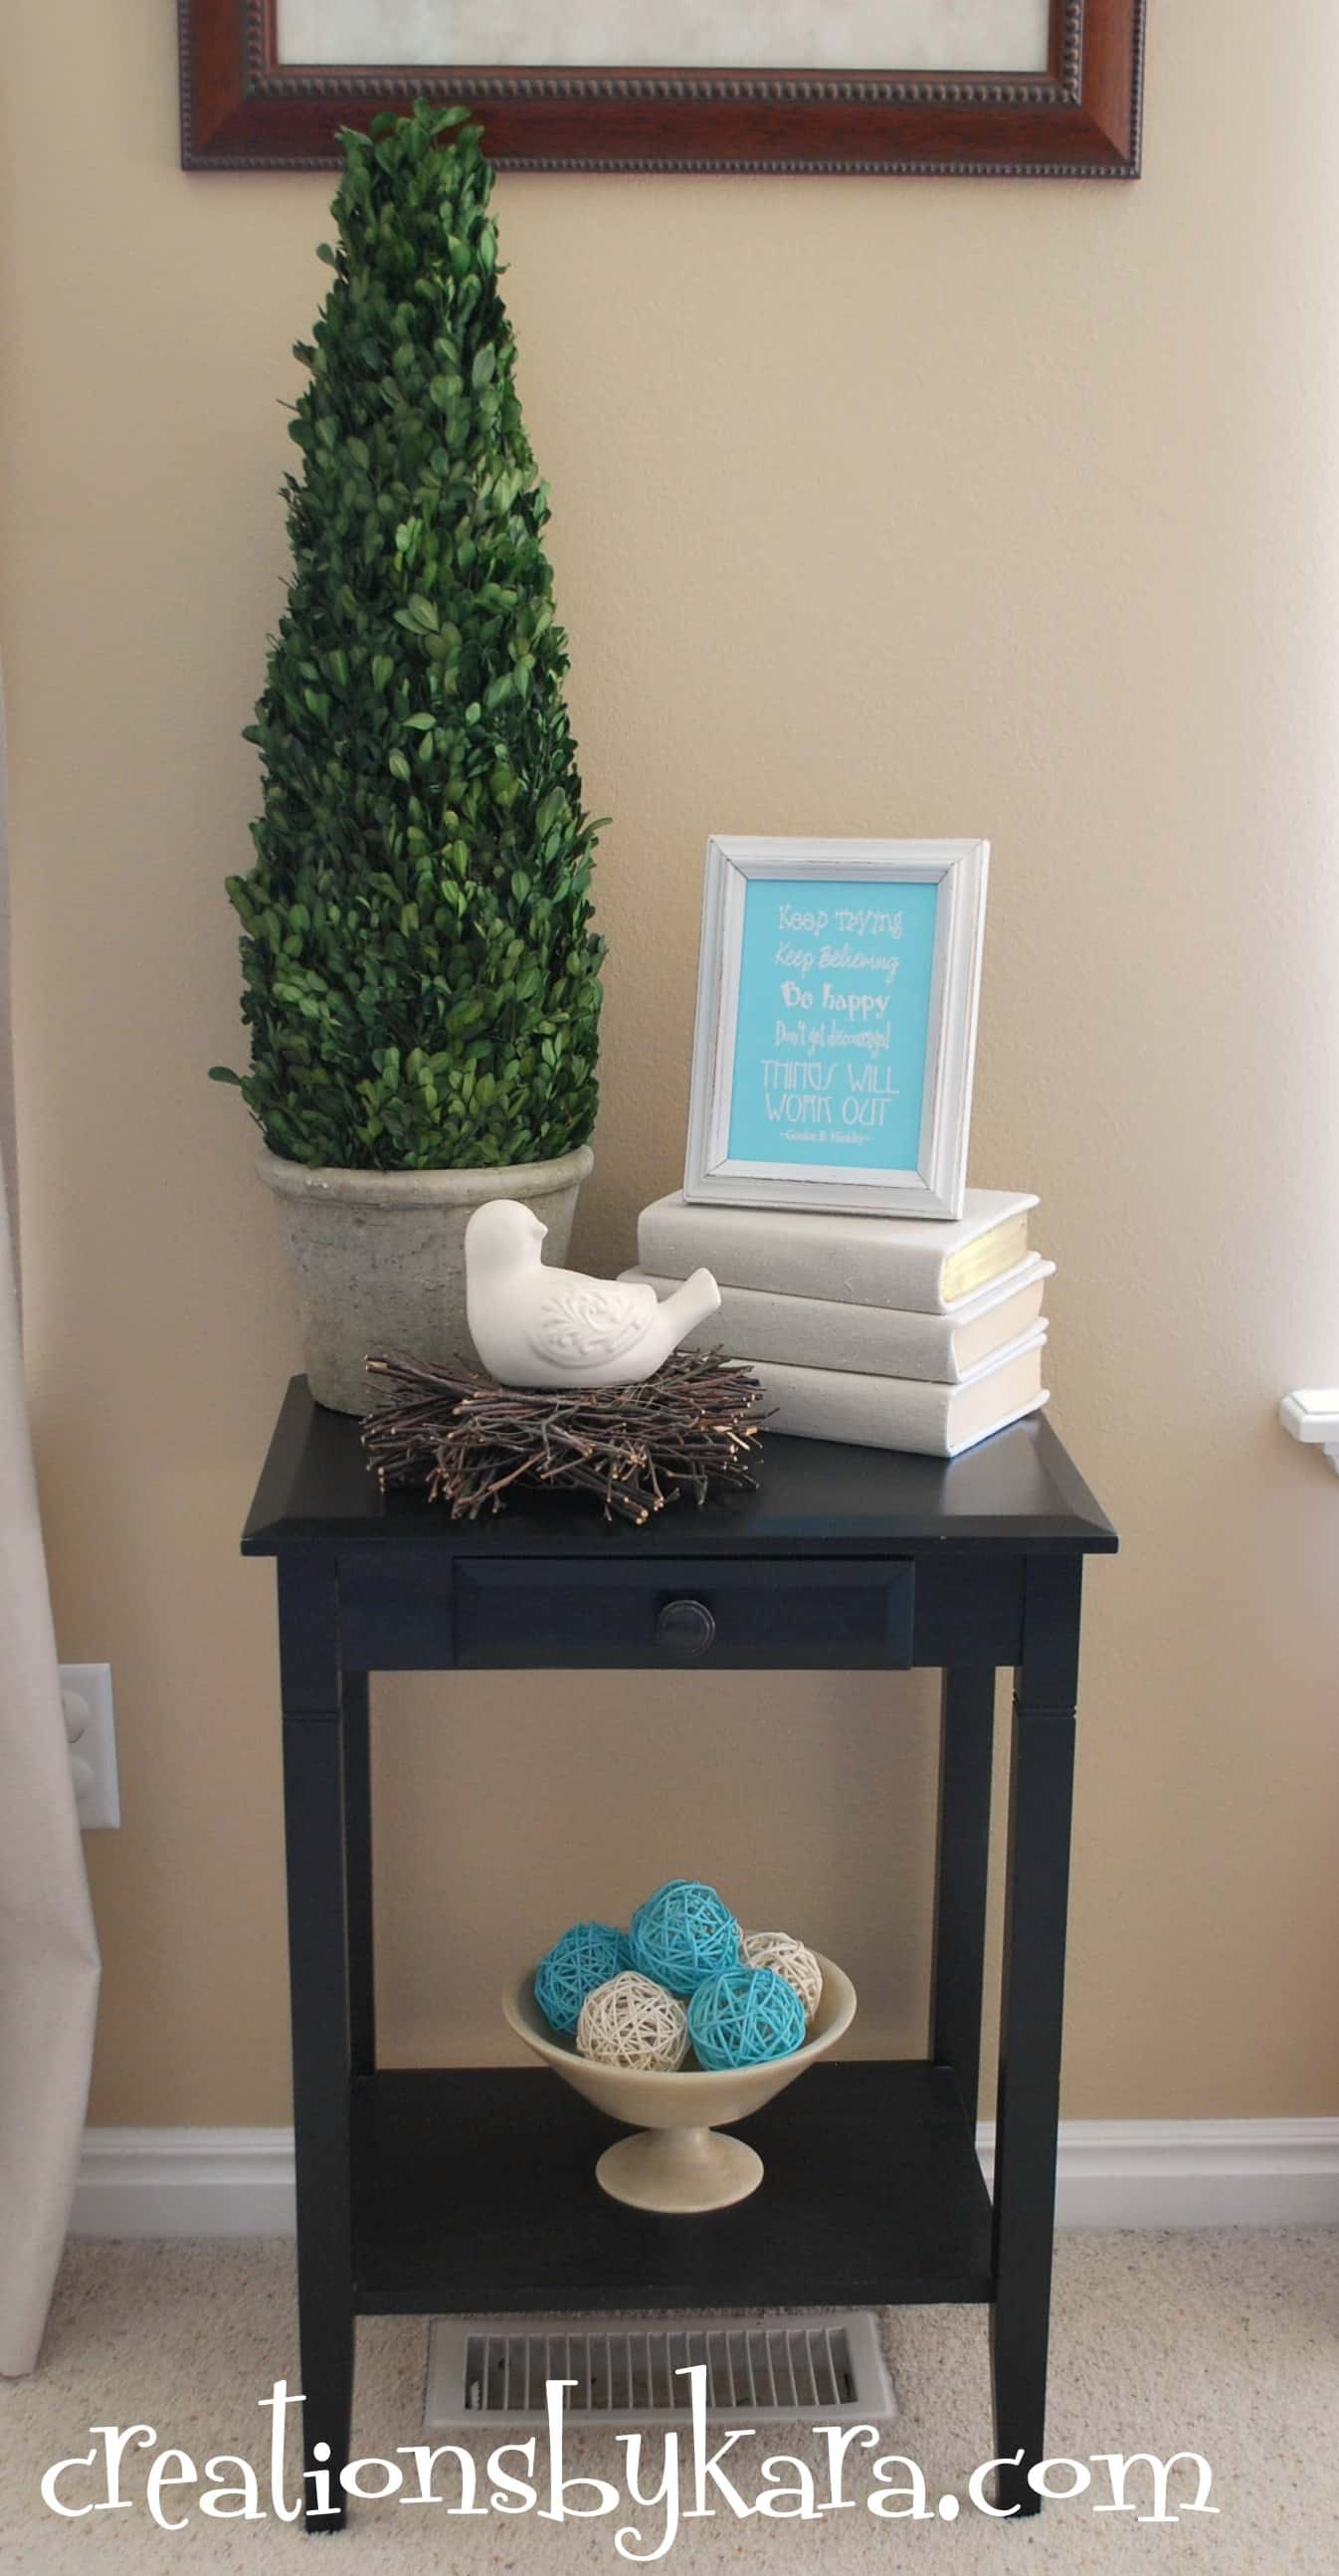 Diy decorating living room table creations by kara - Diy decorating ...